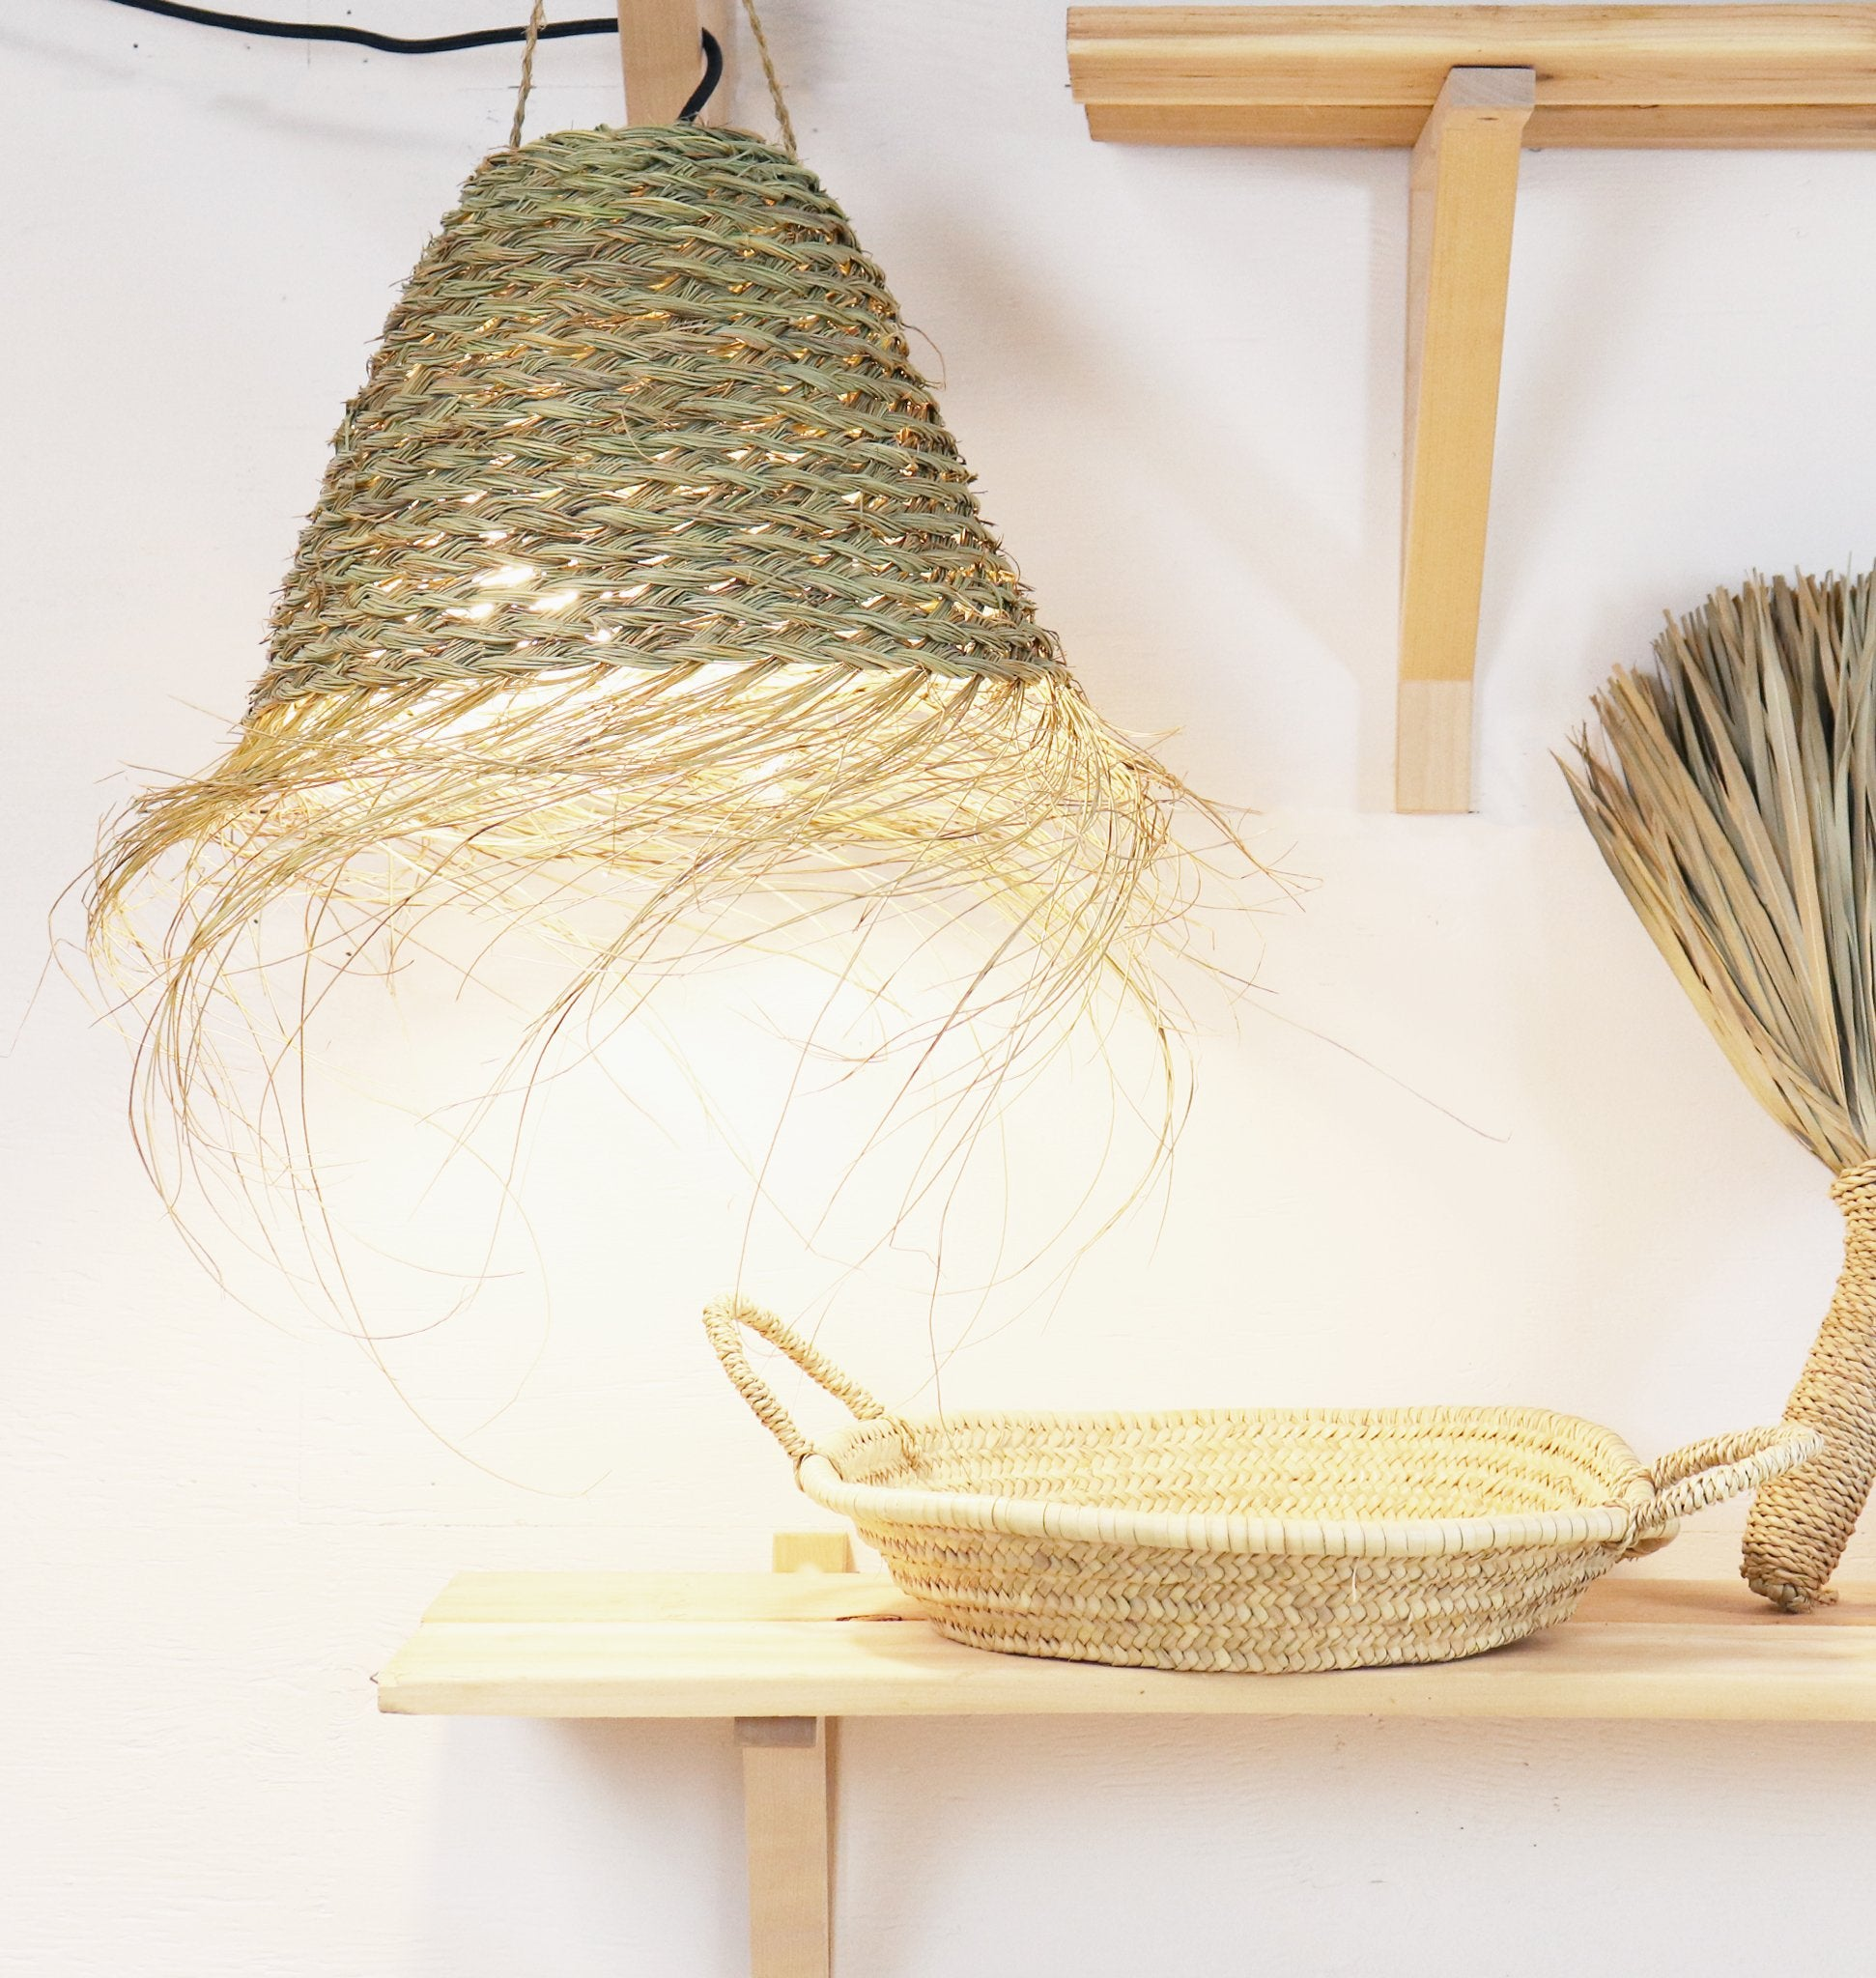 Handwoven  Seagrass Moroccan Lampshade with Fringes